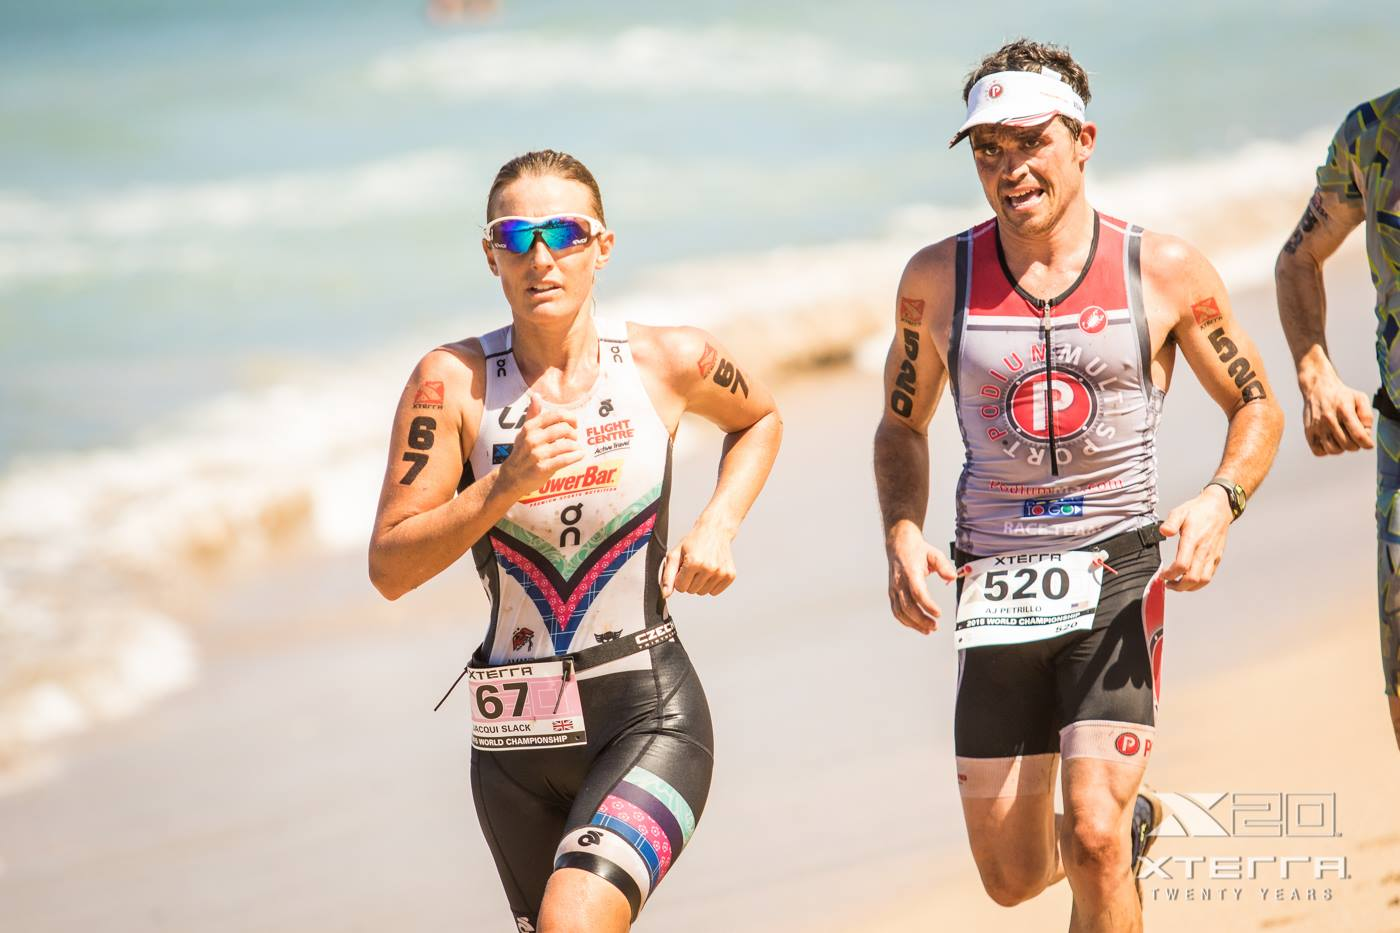 XTERRA_WORLD_CHAMPIONSHIP_2015_00060